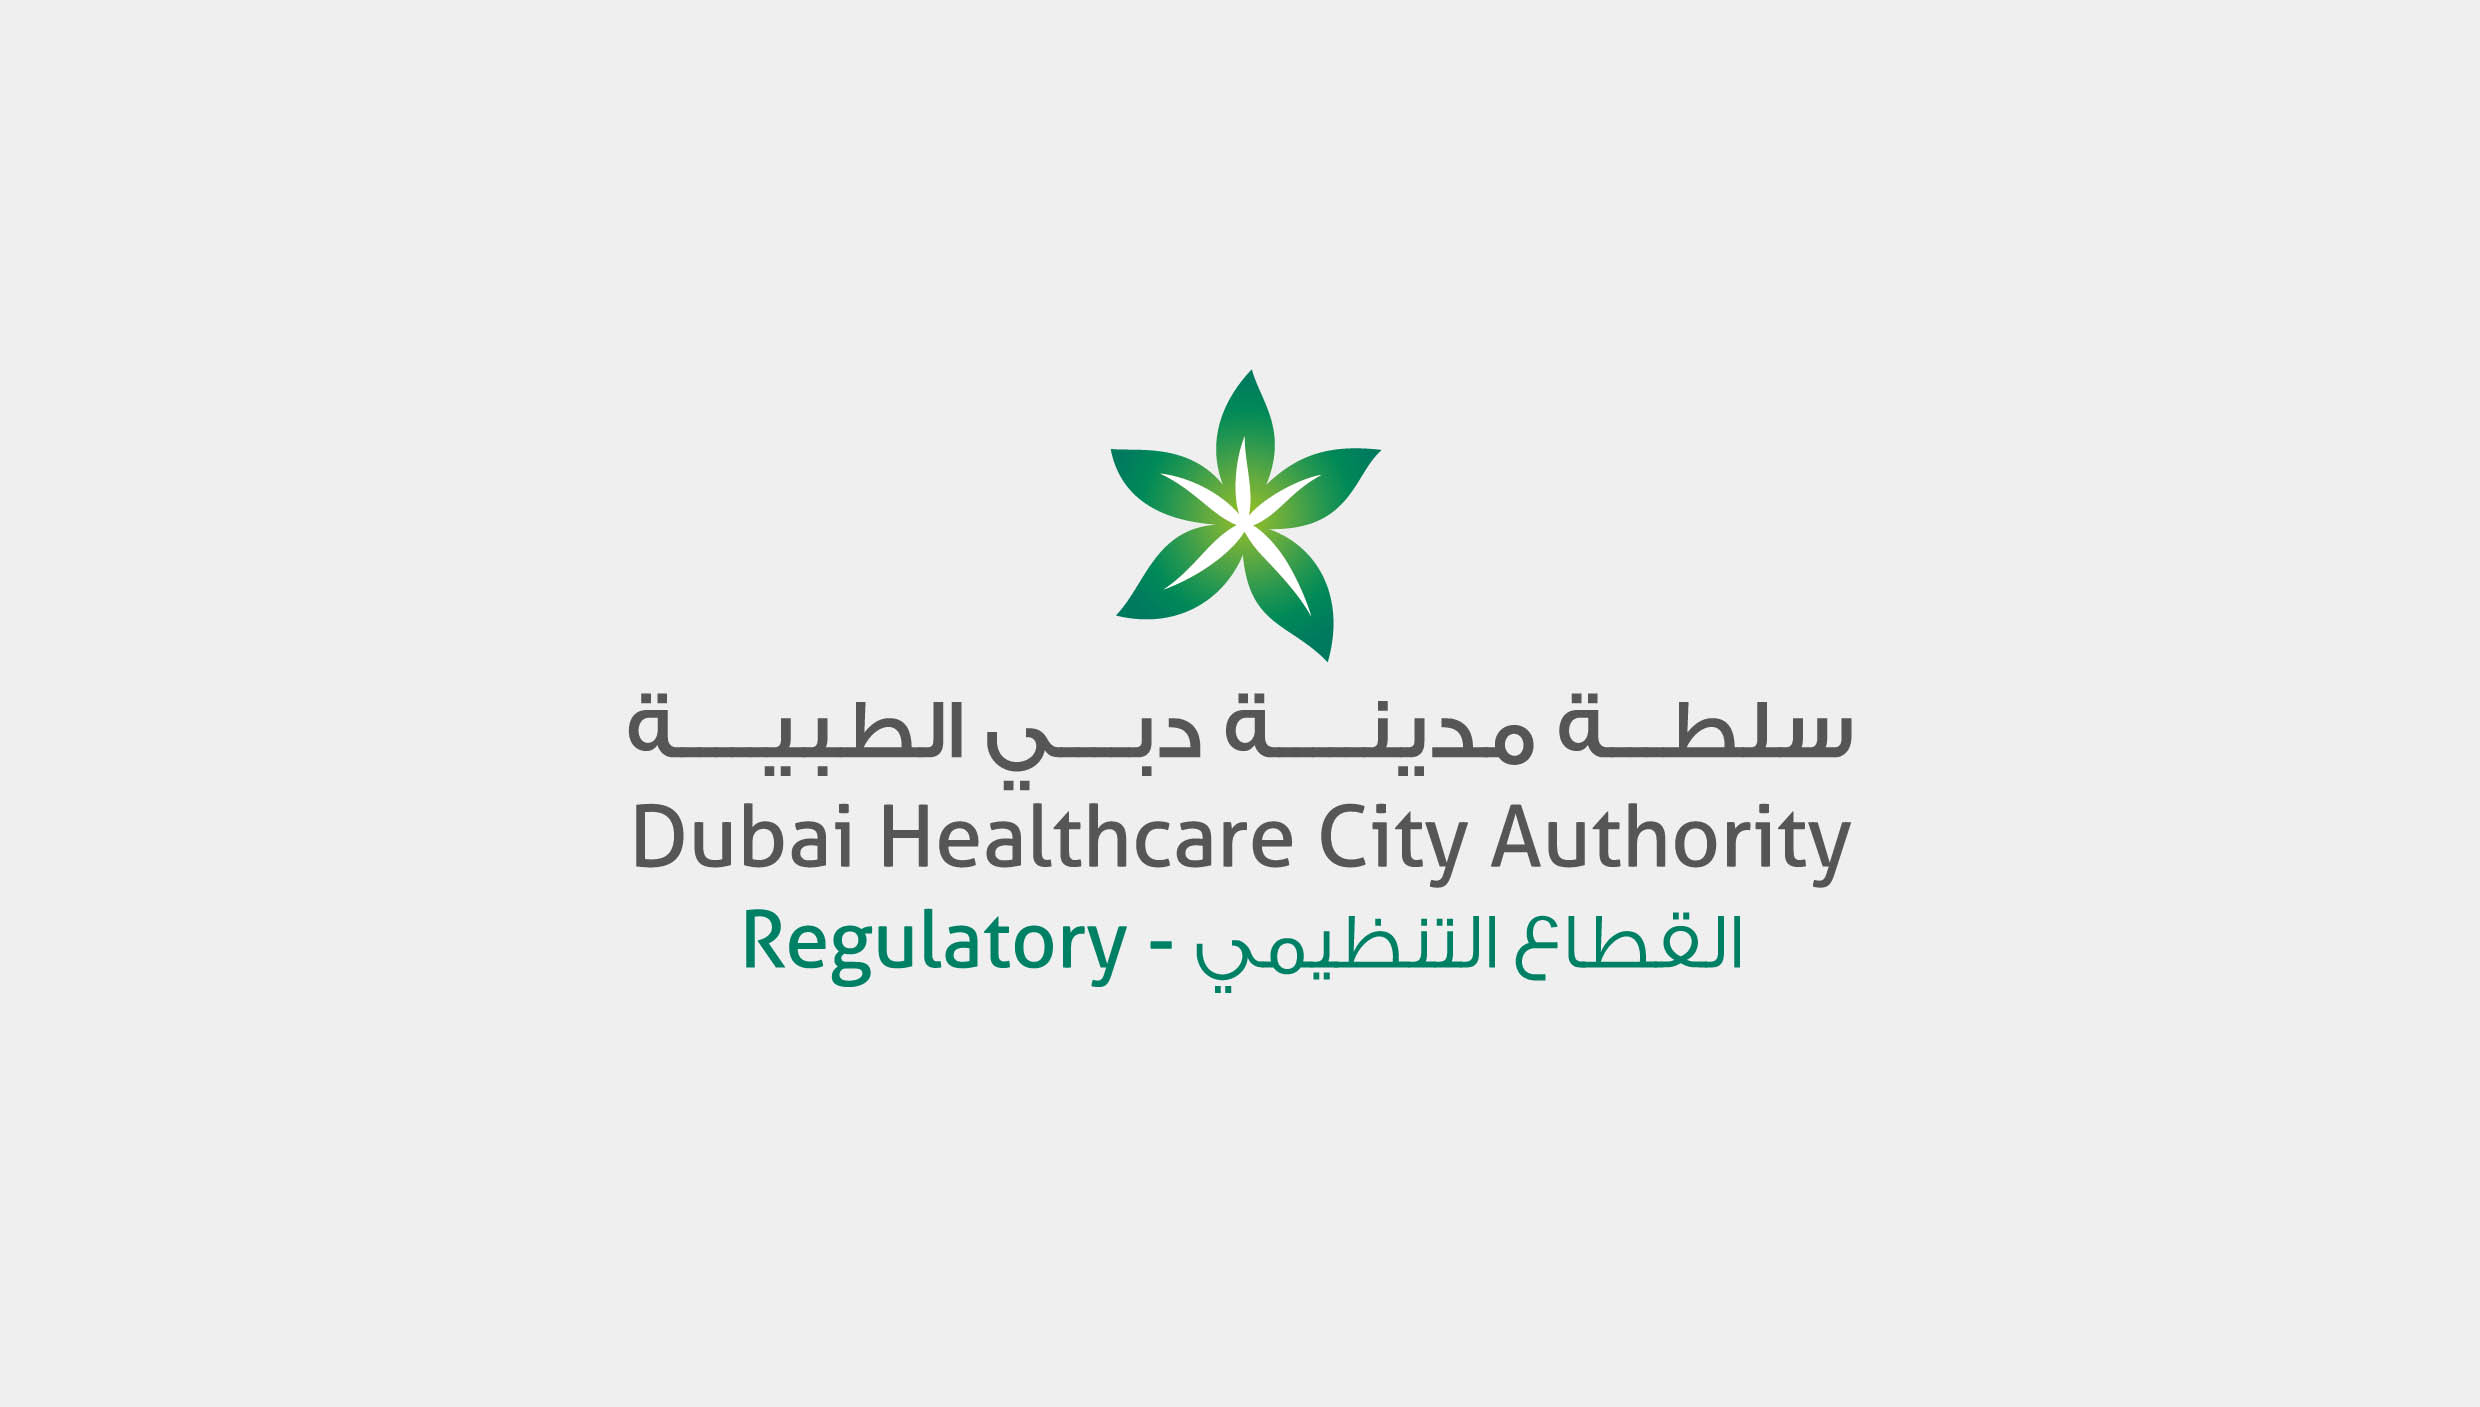 FIRST PUBLIC LIST OF VIOLATIONS AND FINES ANNOUNCED FOR THE DUBAI HEALTHCARE CITY